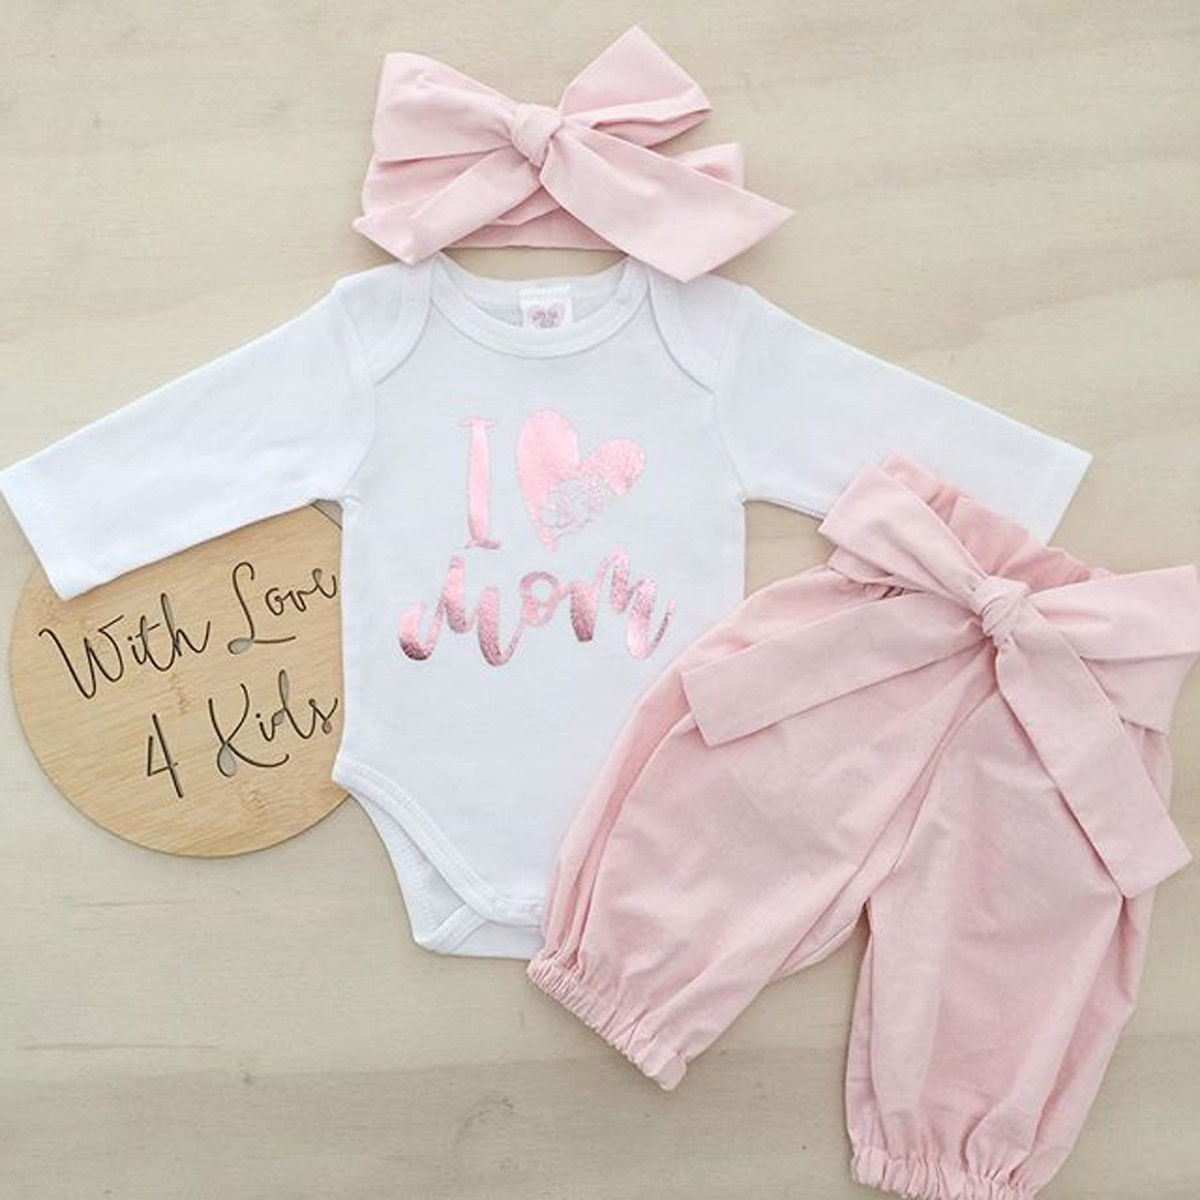 Pudcoco Girl Set 0-24M 3pcs Baby Girls Romper+Long Pants+Headband Cute Outfits Toddler Kid Clothing Set